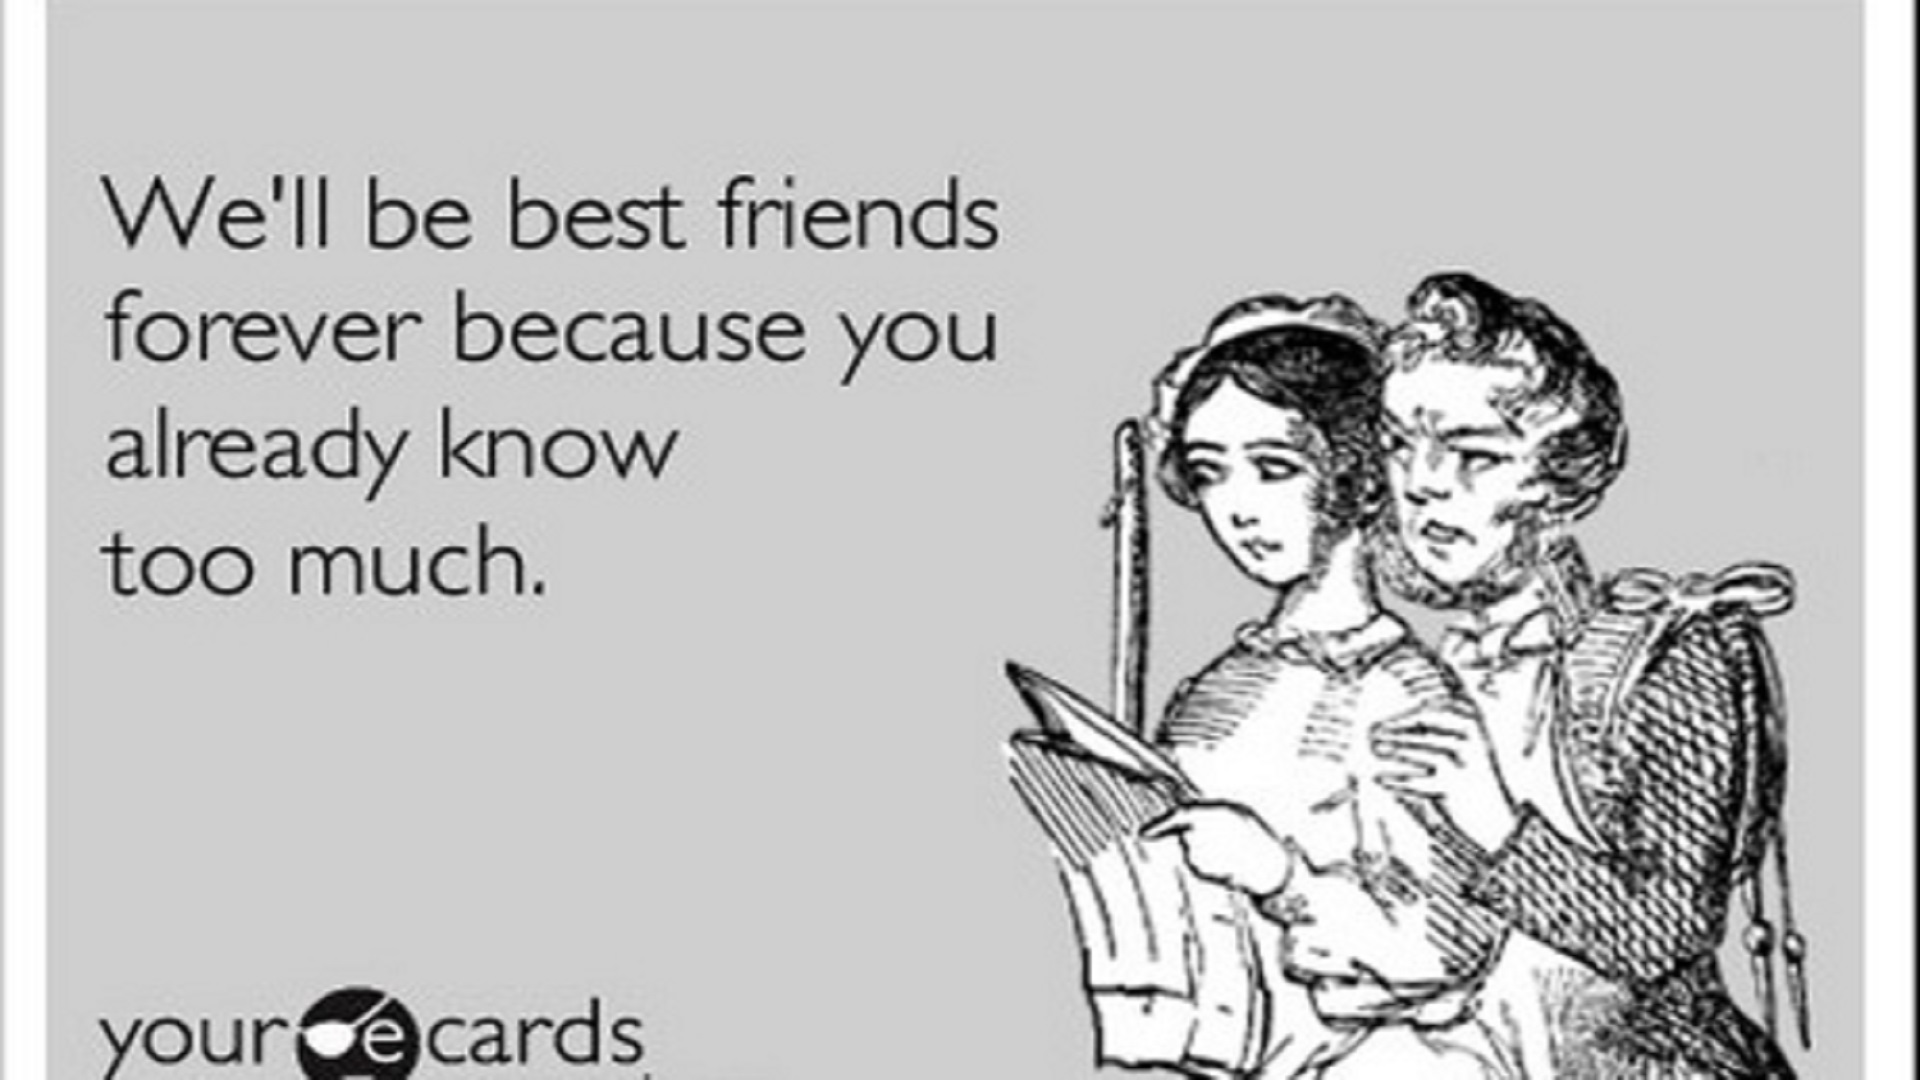 Free Download Funny Friendship Quotes Hd Wallpapers Hd Wallpaper